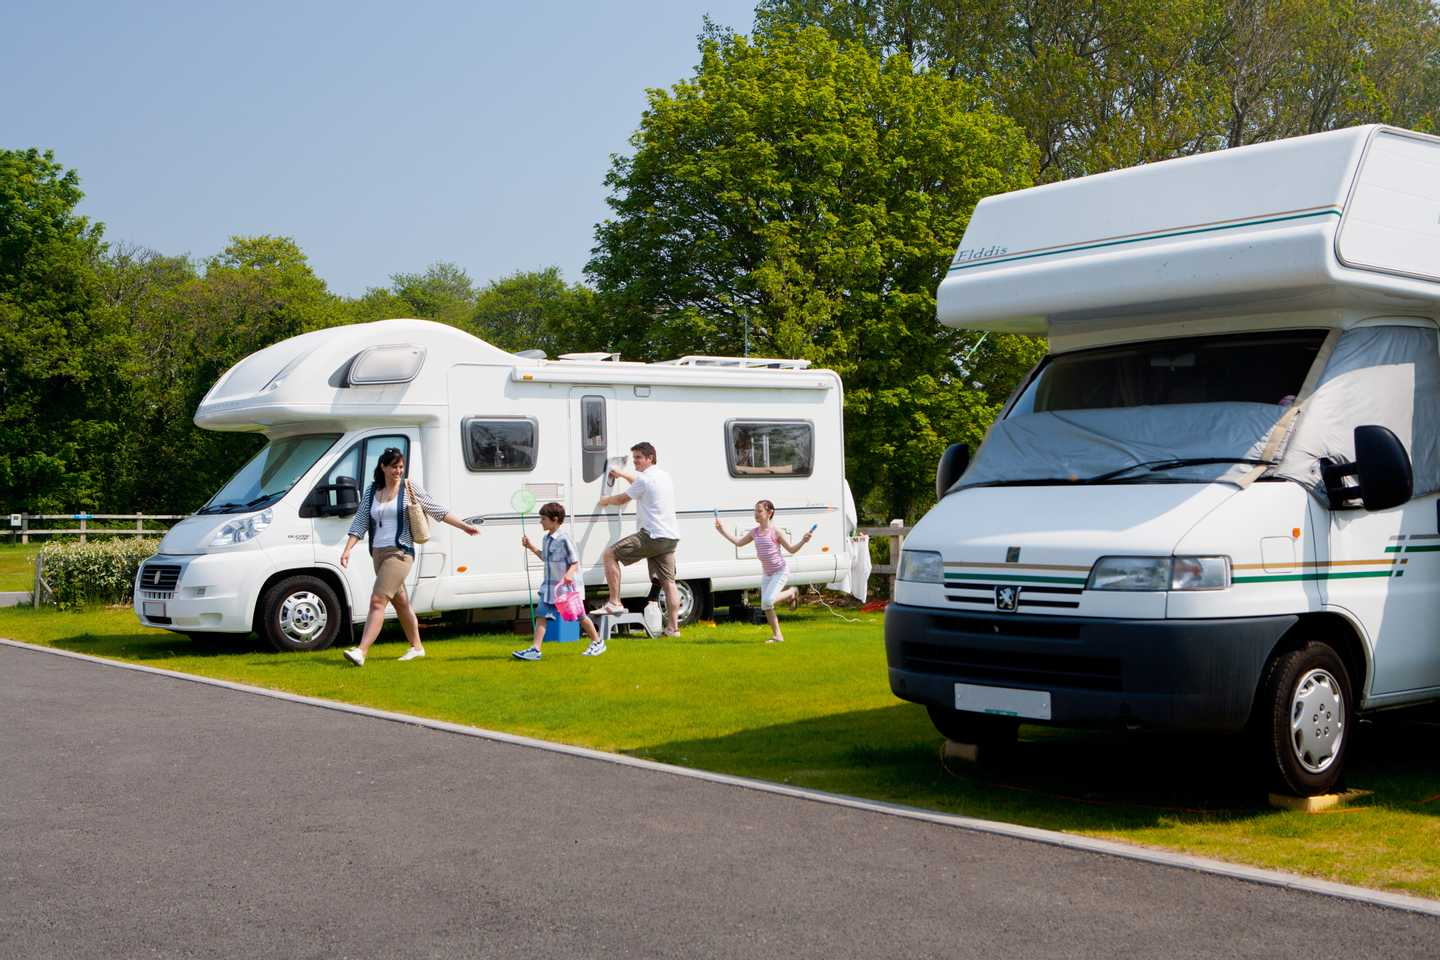 A pair of motorhomes hooked up to electrical points at Kiln Park